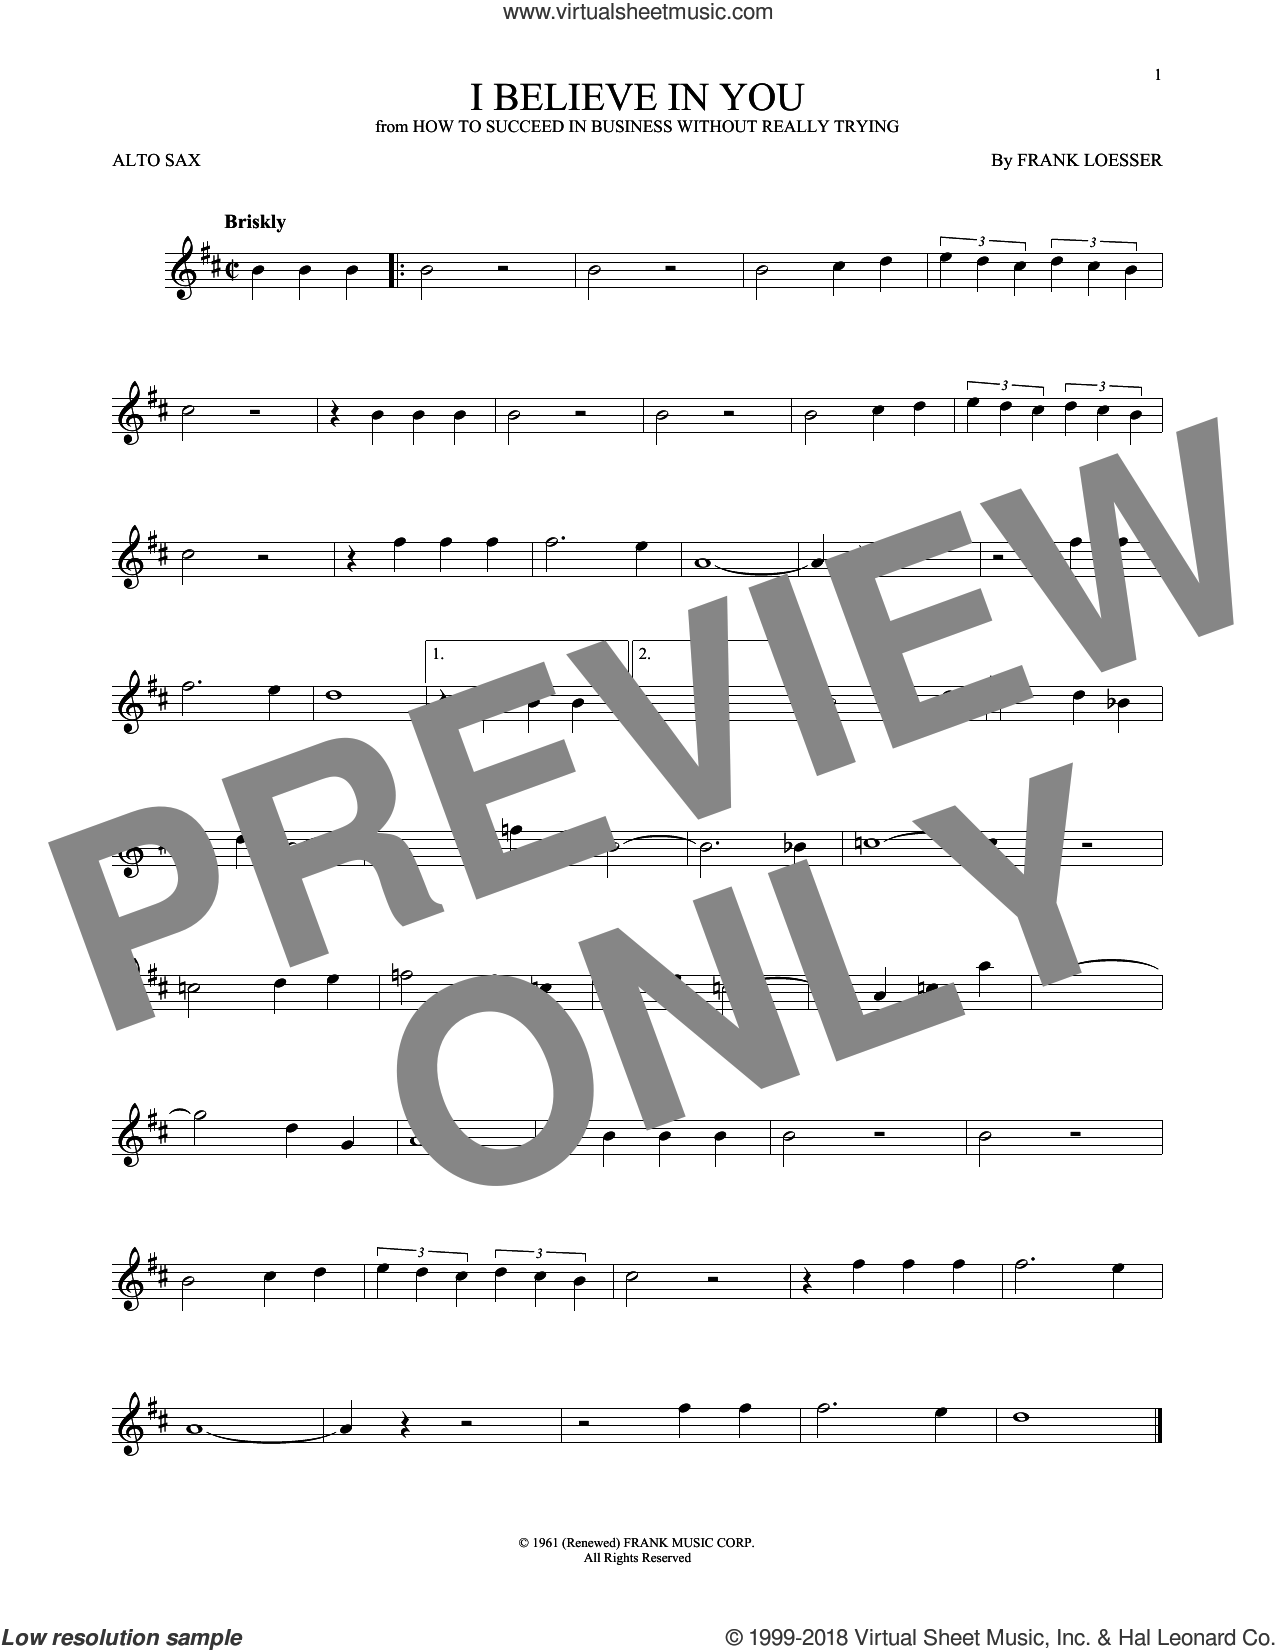 I Believe In You sheet music for alto saxophone solo by Frank Loesser, intermediate skill level